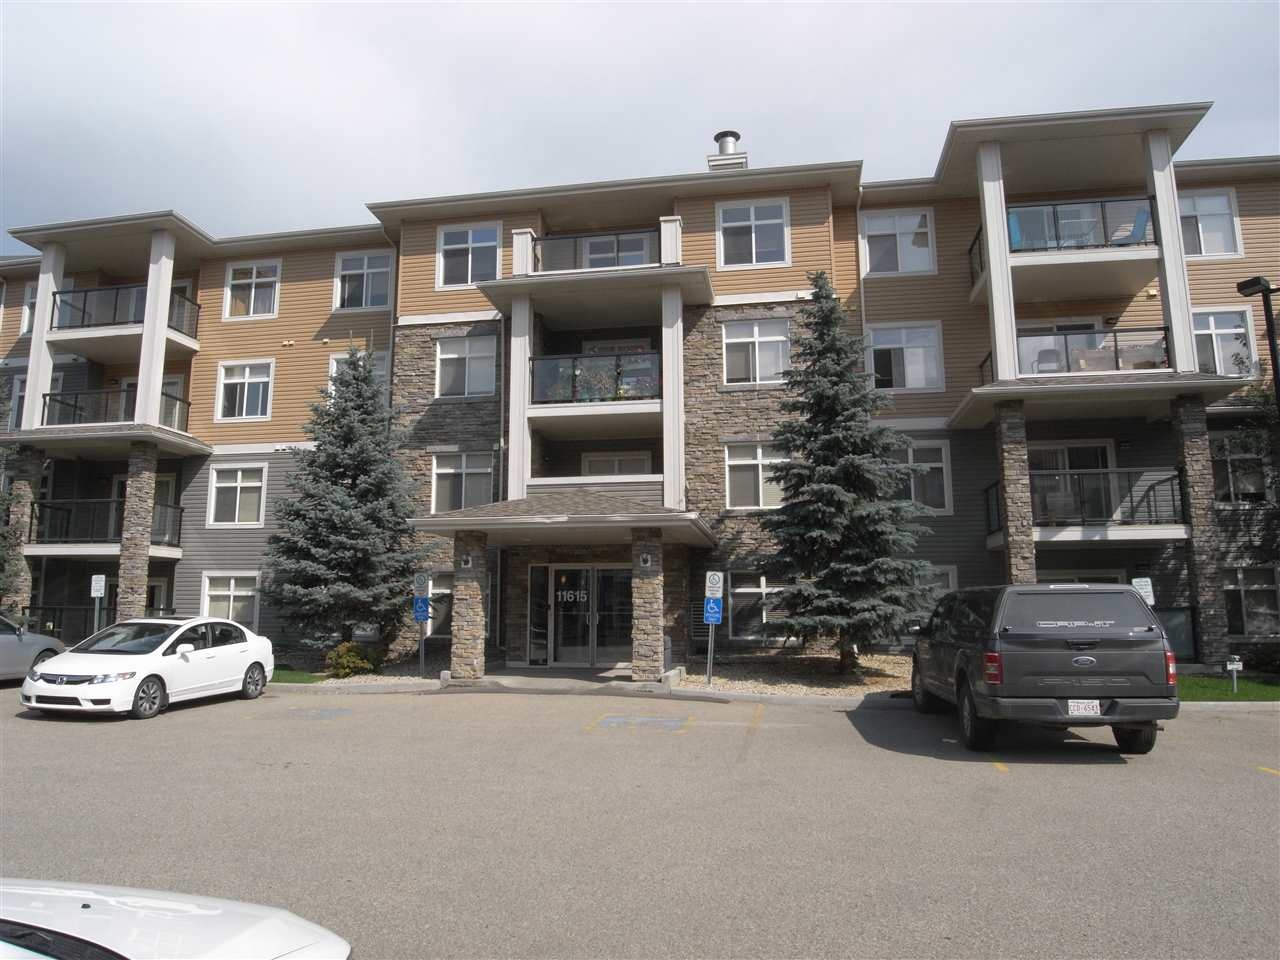 MLS® listing #E4169345 for sale located at 405 11615 ellerslie Road